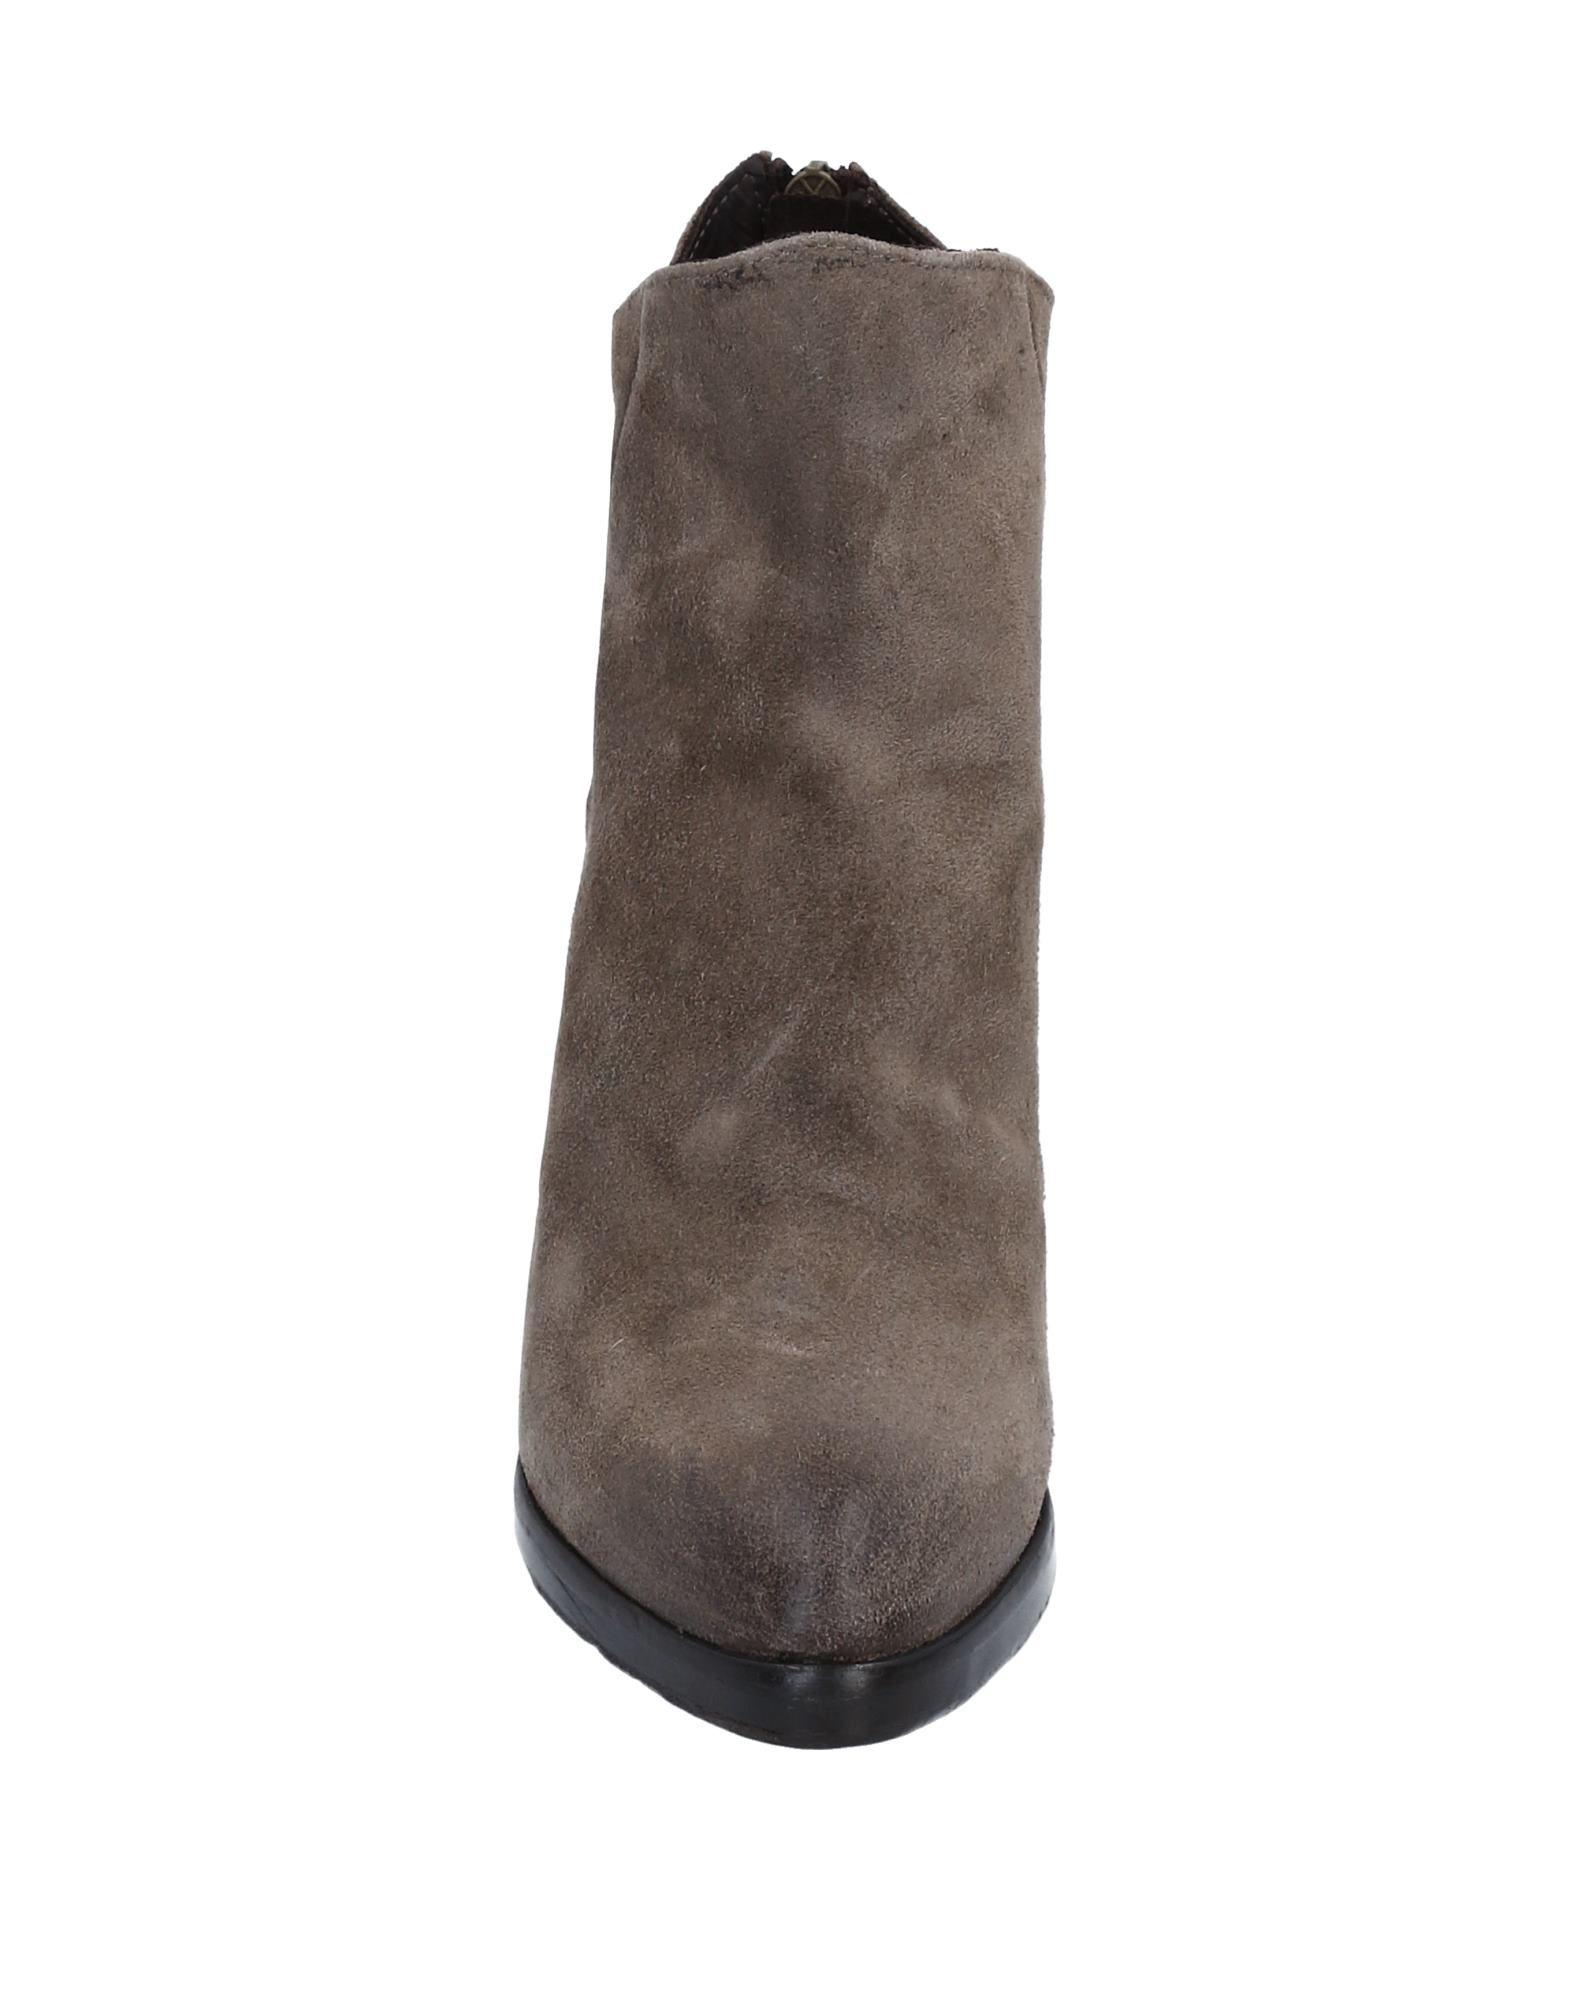 Hundred 100 Leather Ankle Boots in Khaki (Brown)